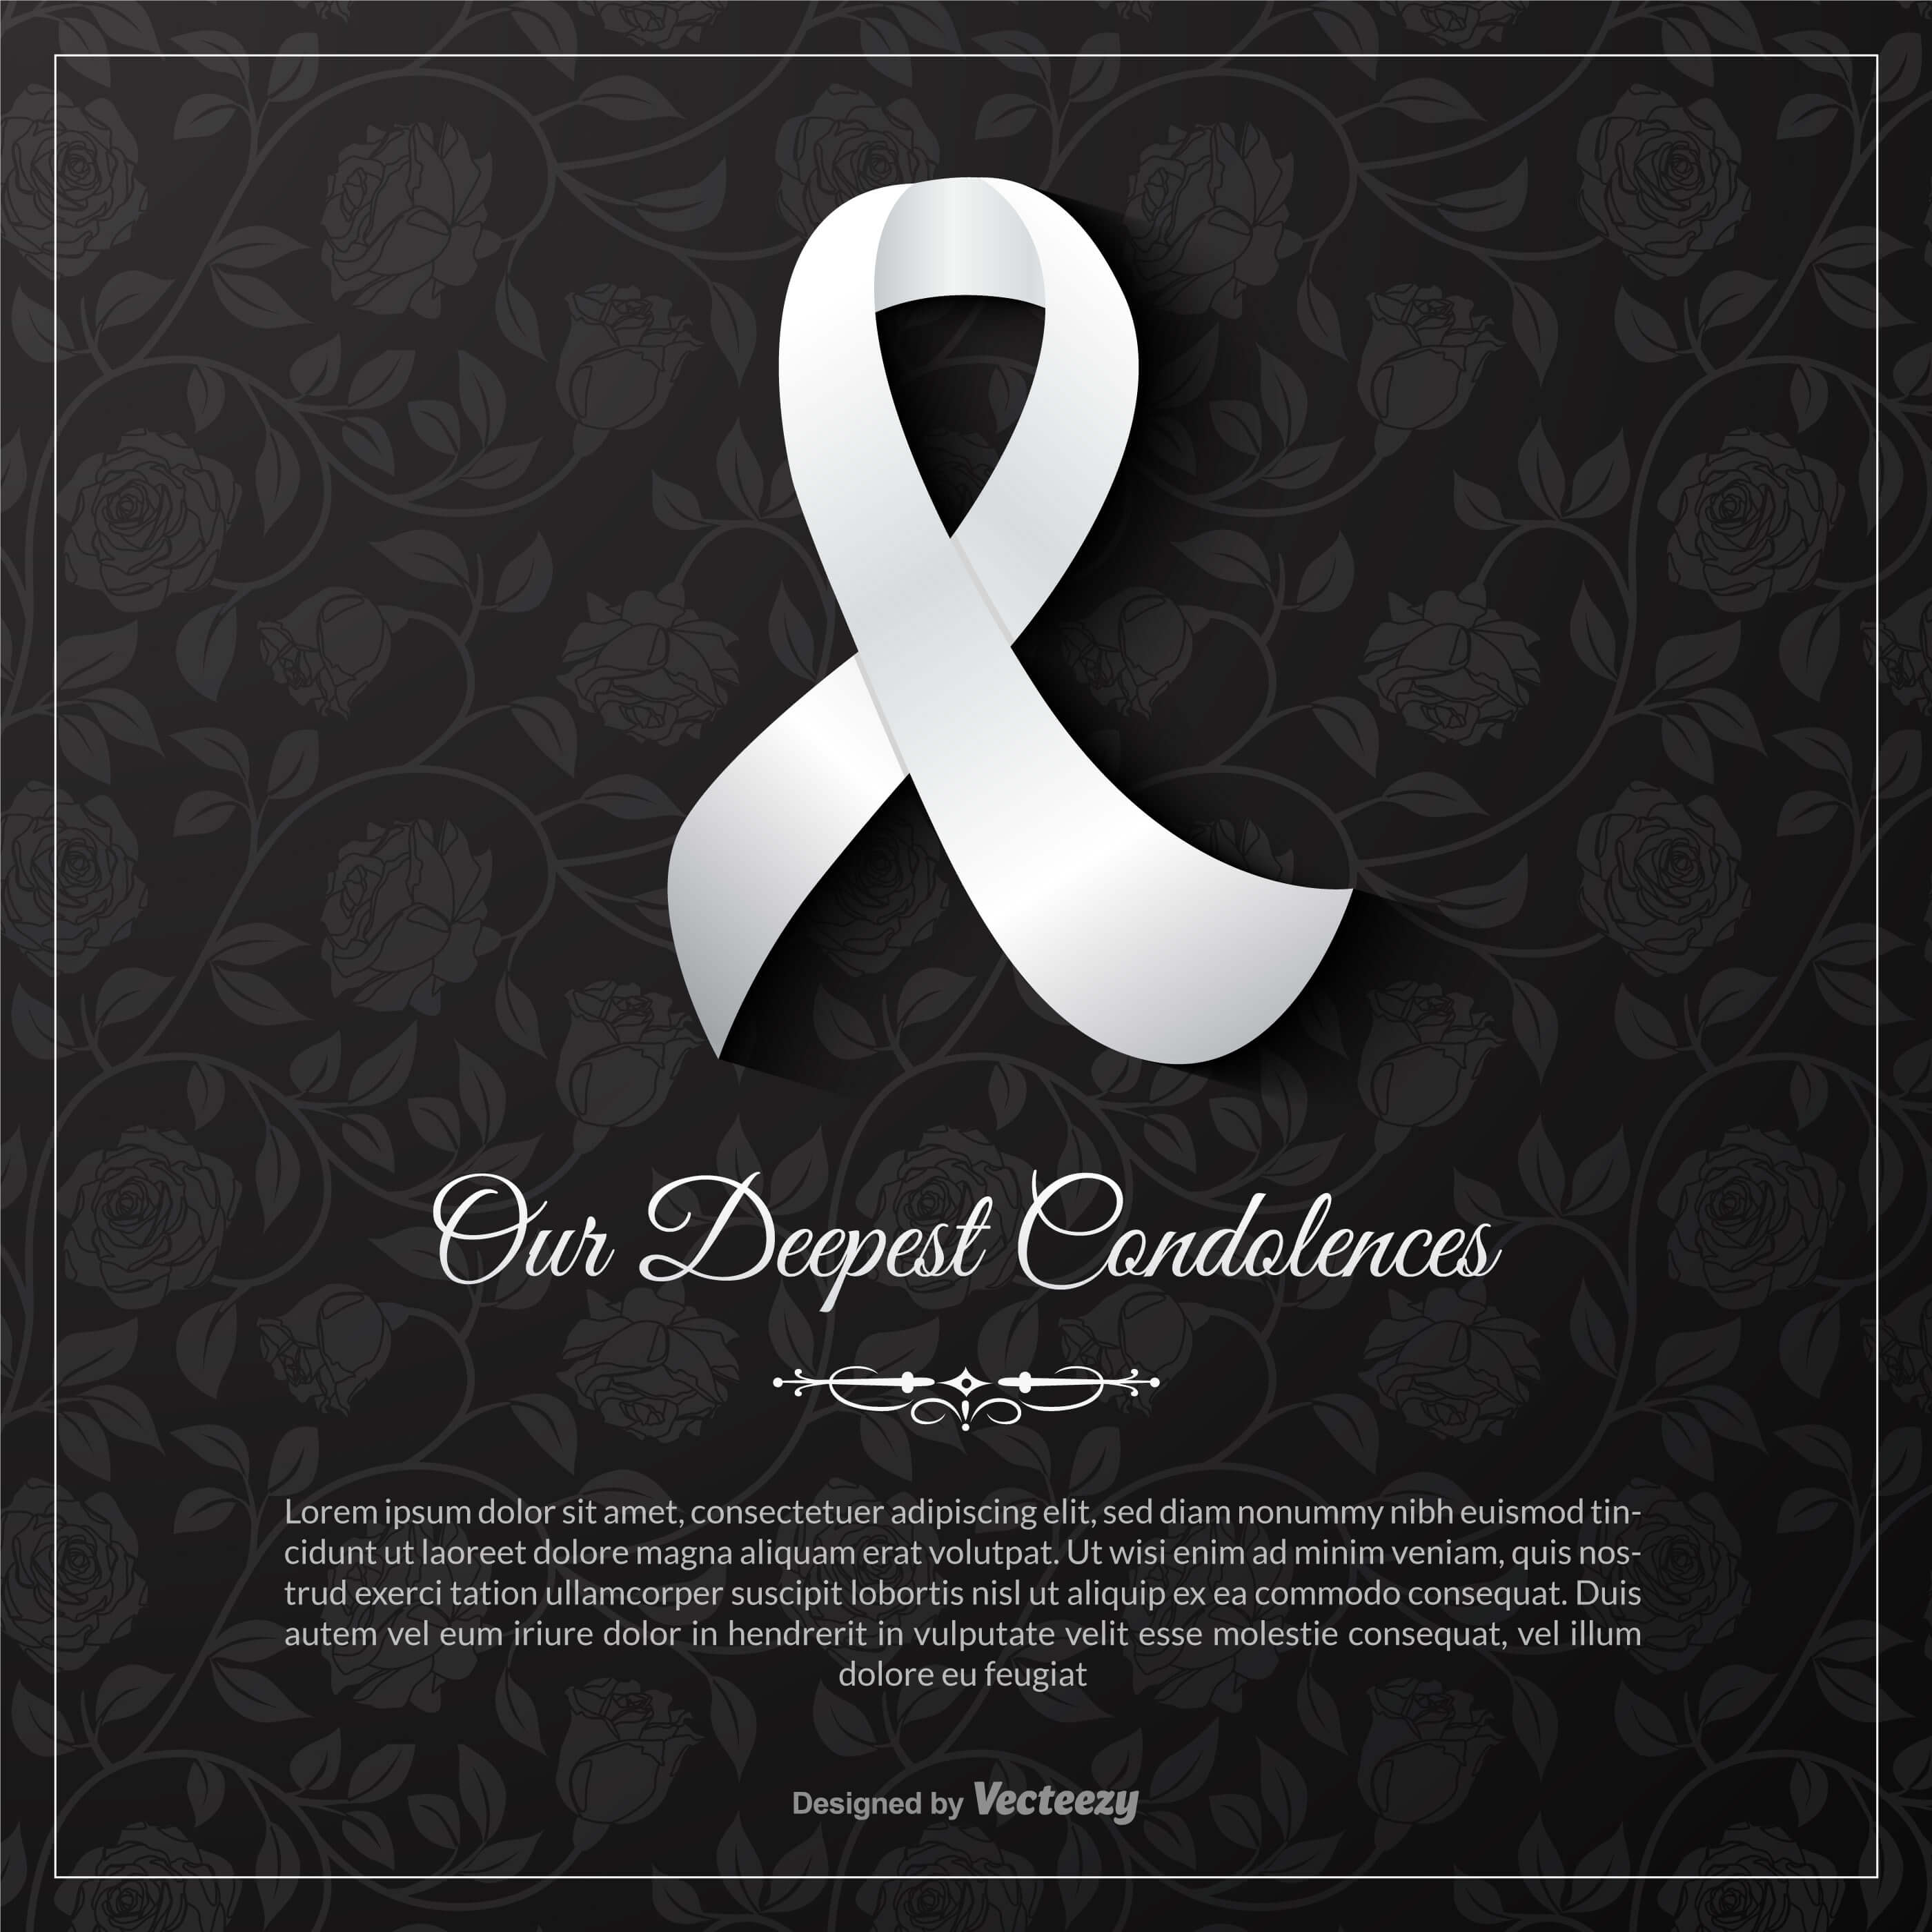 Condolence Card Free Vector Art - (39 Free Downloads) in Sorry For Your Loss Card Template